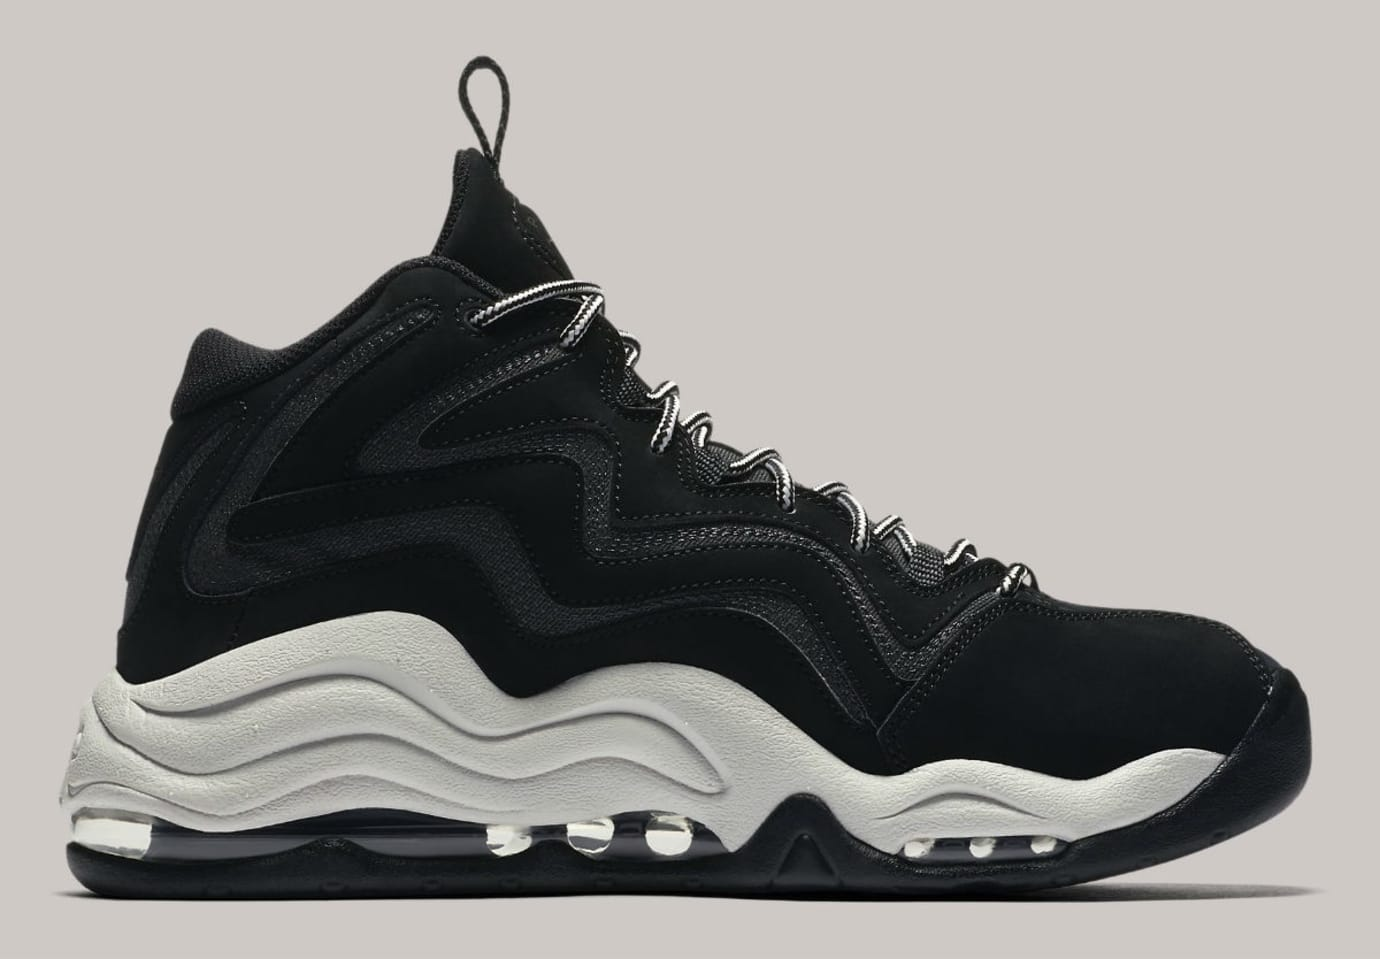 Nike Air Pippen Black Anthracite Vast Grey Release Date 325001-004 Medial